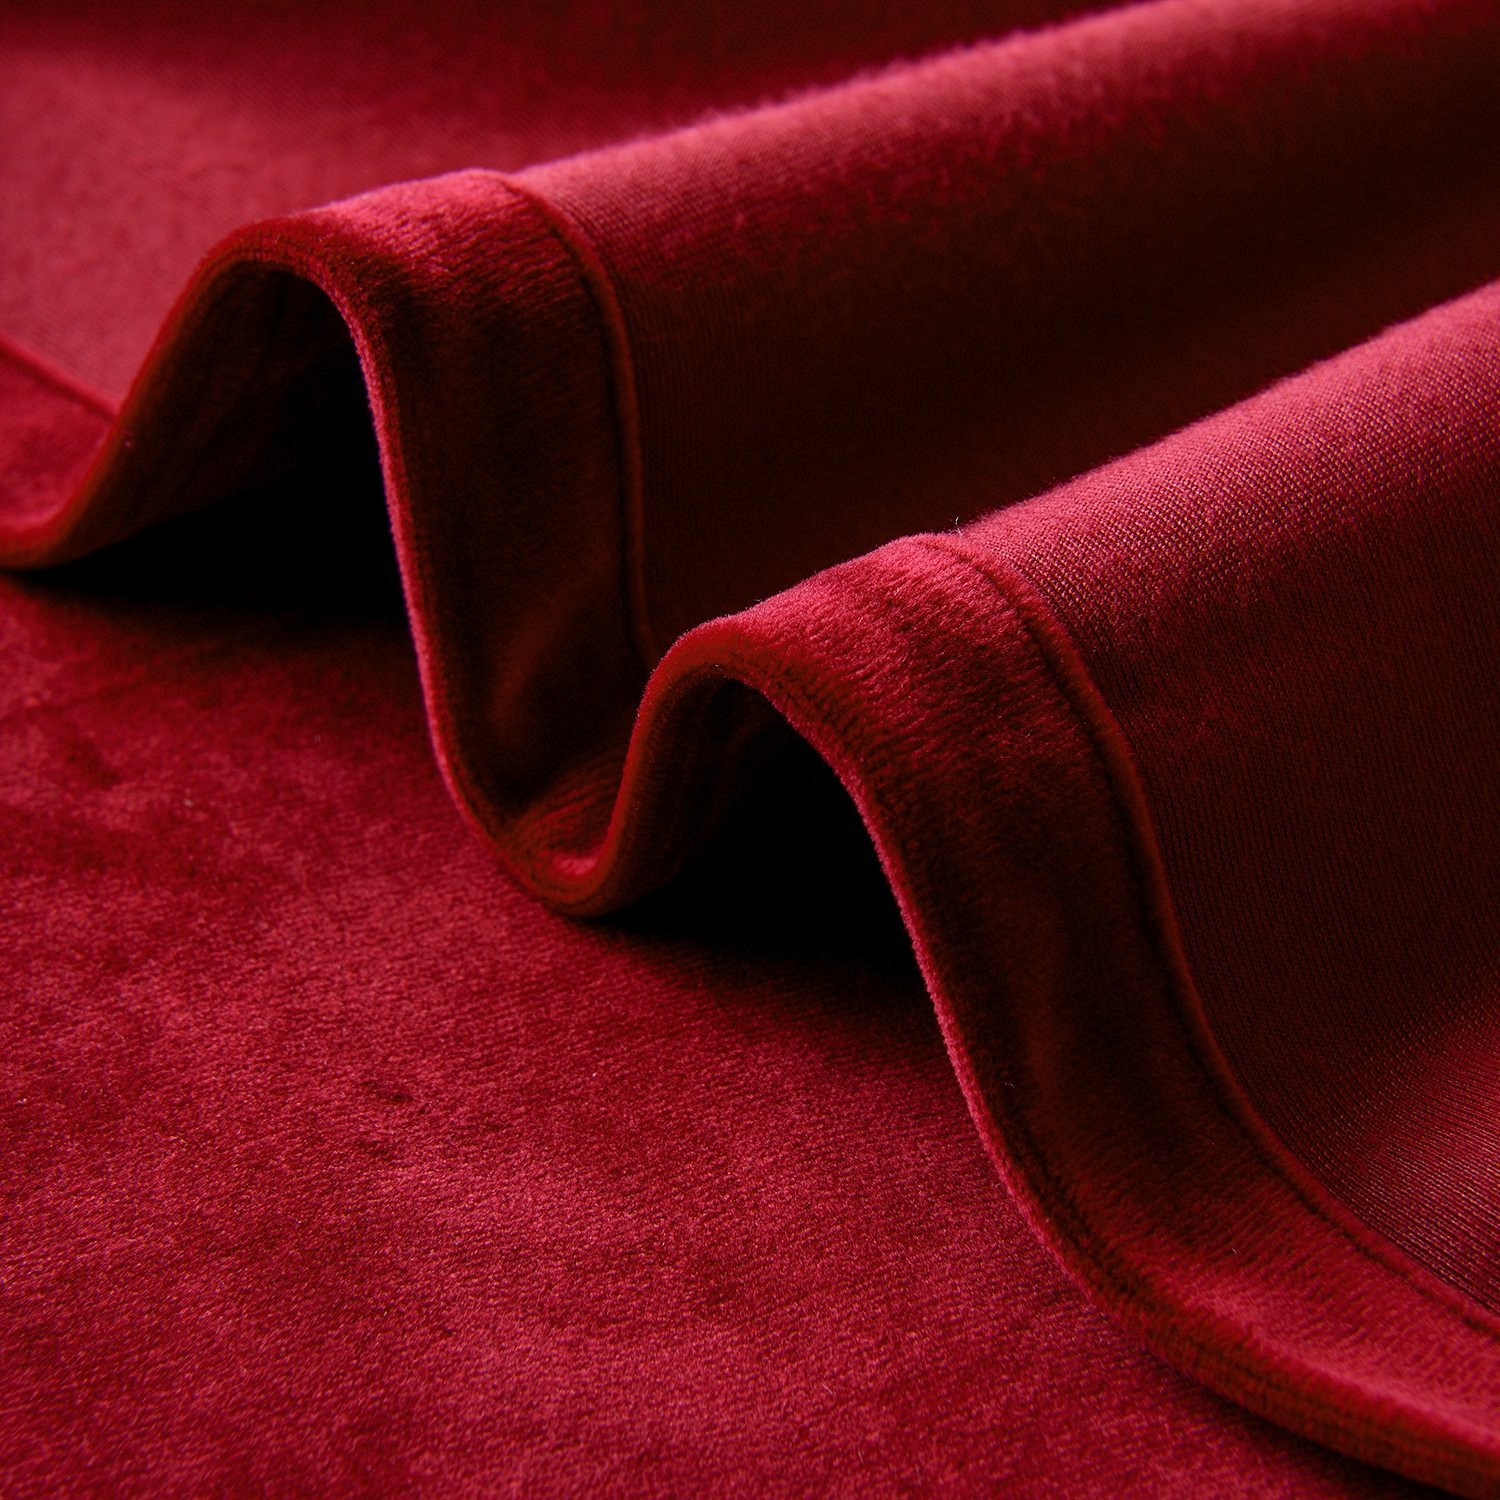 Cherry Home Set of 2 Classic Blackout Velvet Curtains Panels Home Theater Grommet Drapes Eyelet 52Wx63L-inch Red(2 panels)Theater  Bedroom  Living Room  Hotel by Cherry Home (Image #7)